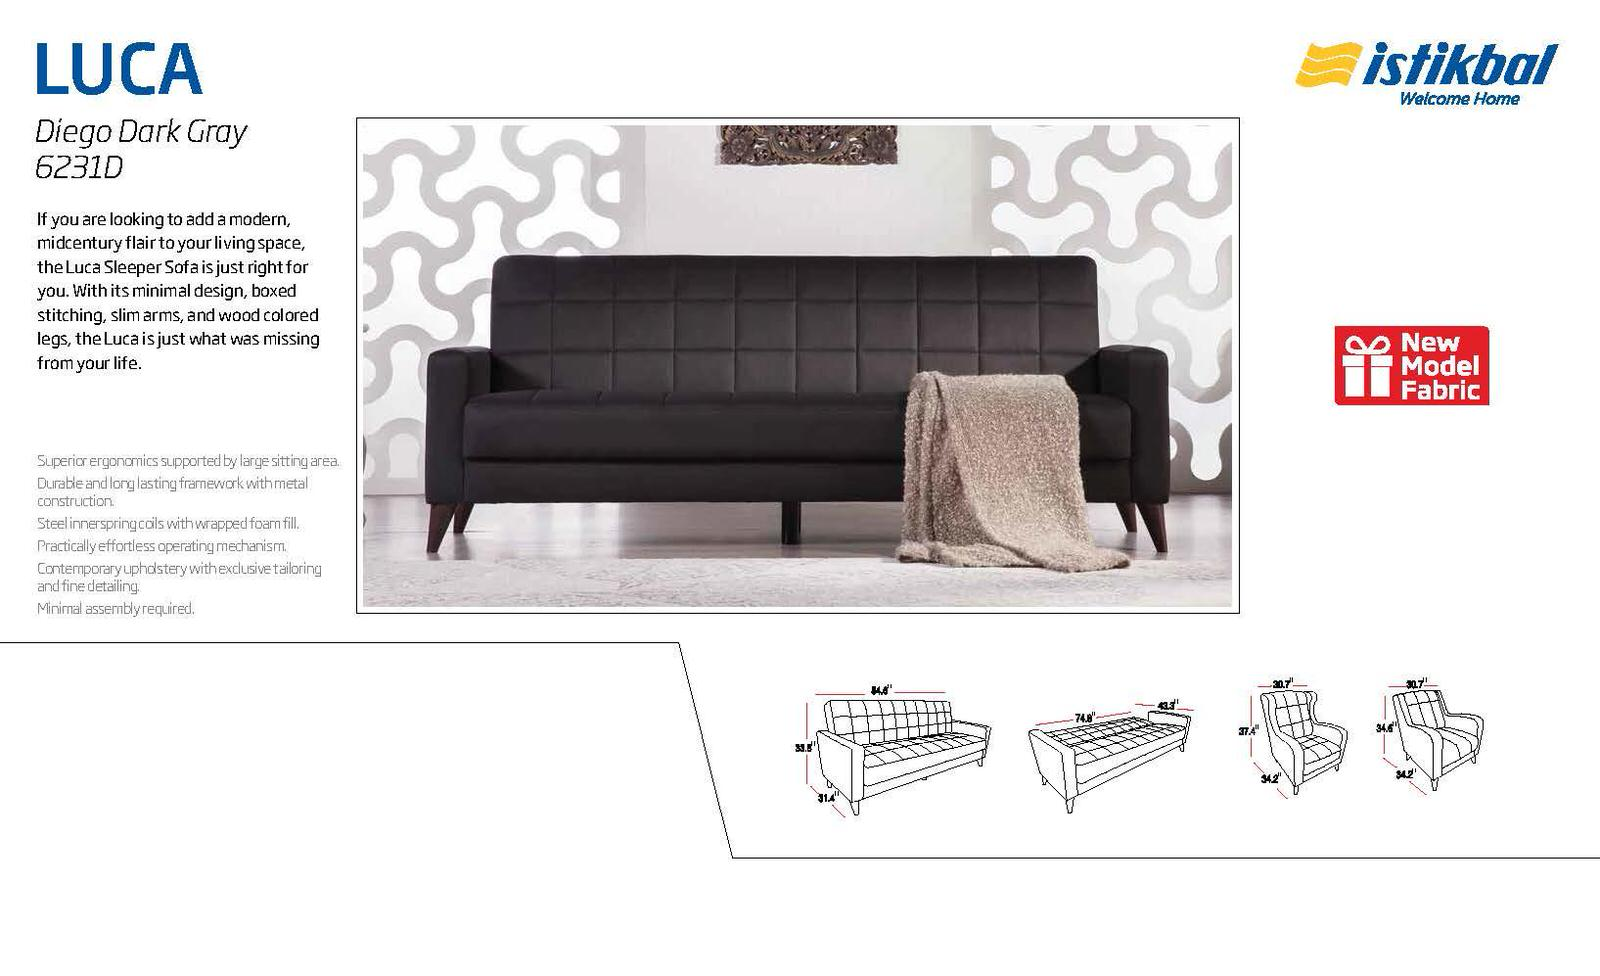 luca diego dark gray convertible sofa bed by sunset